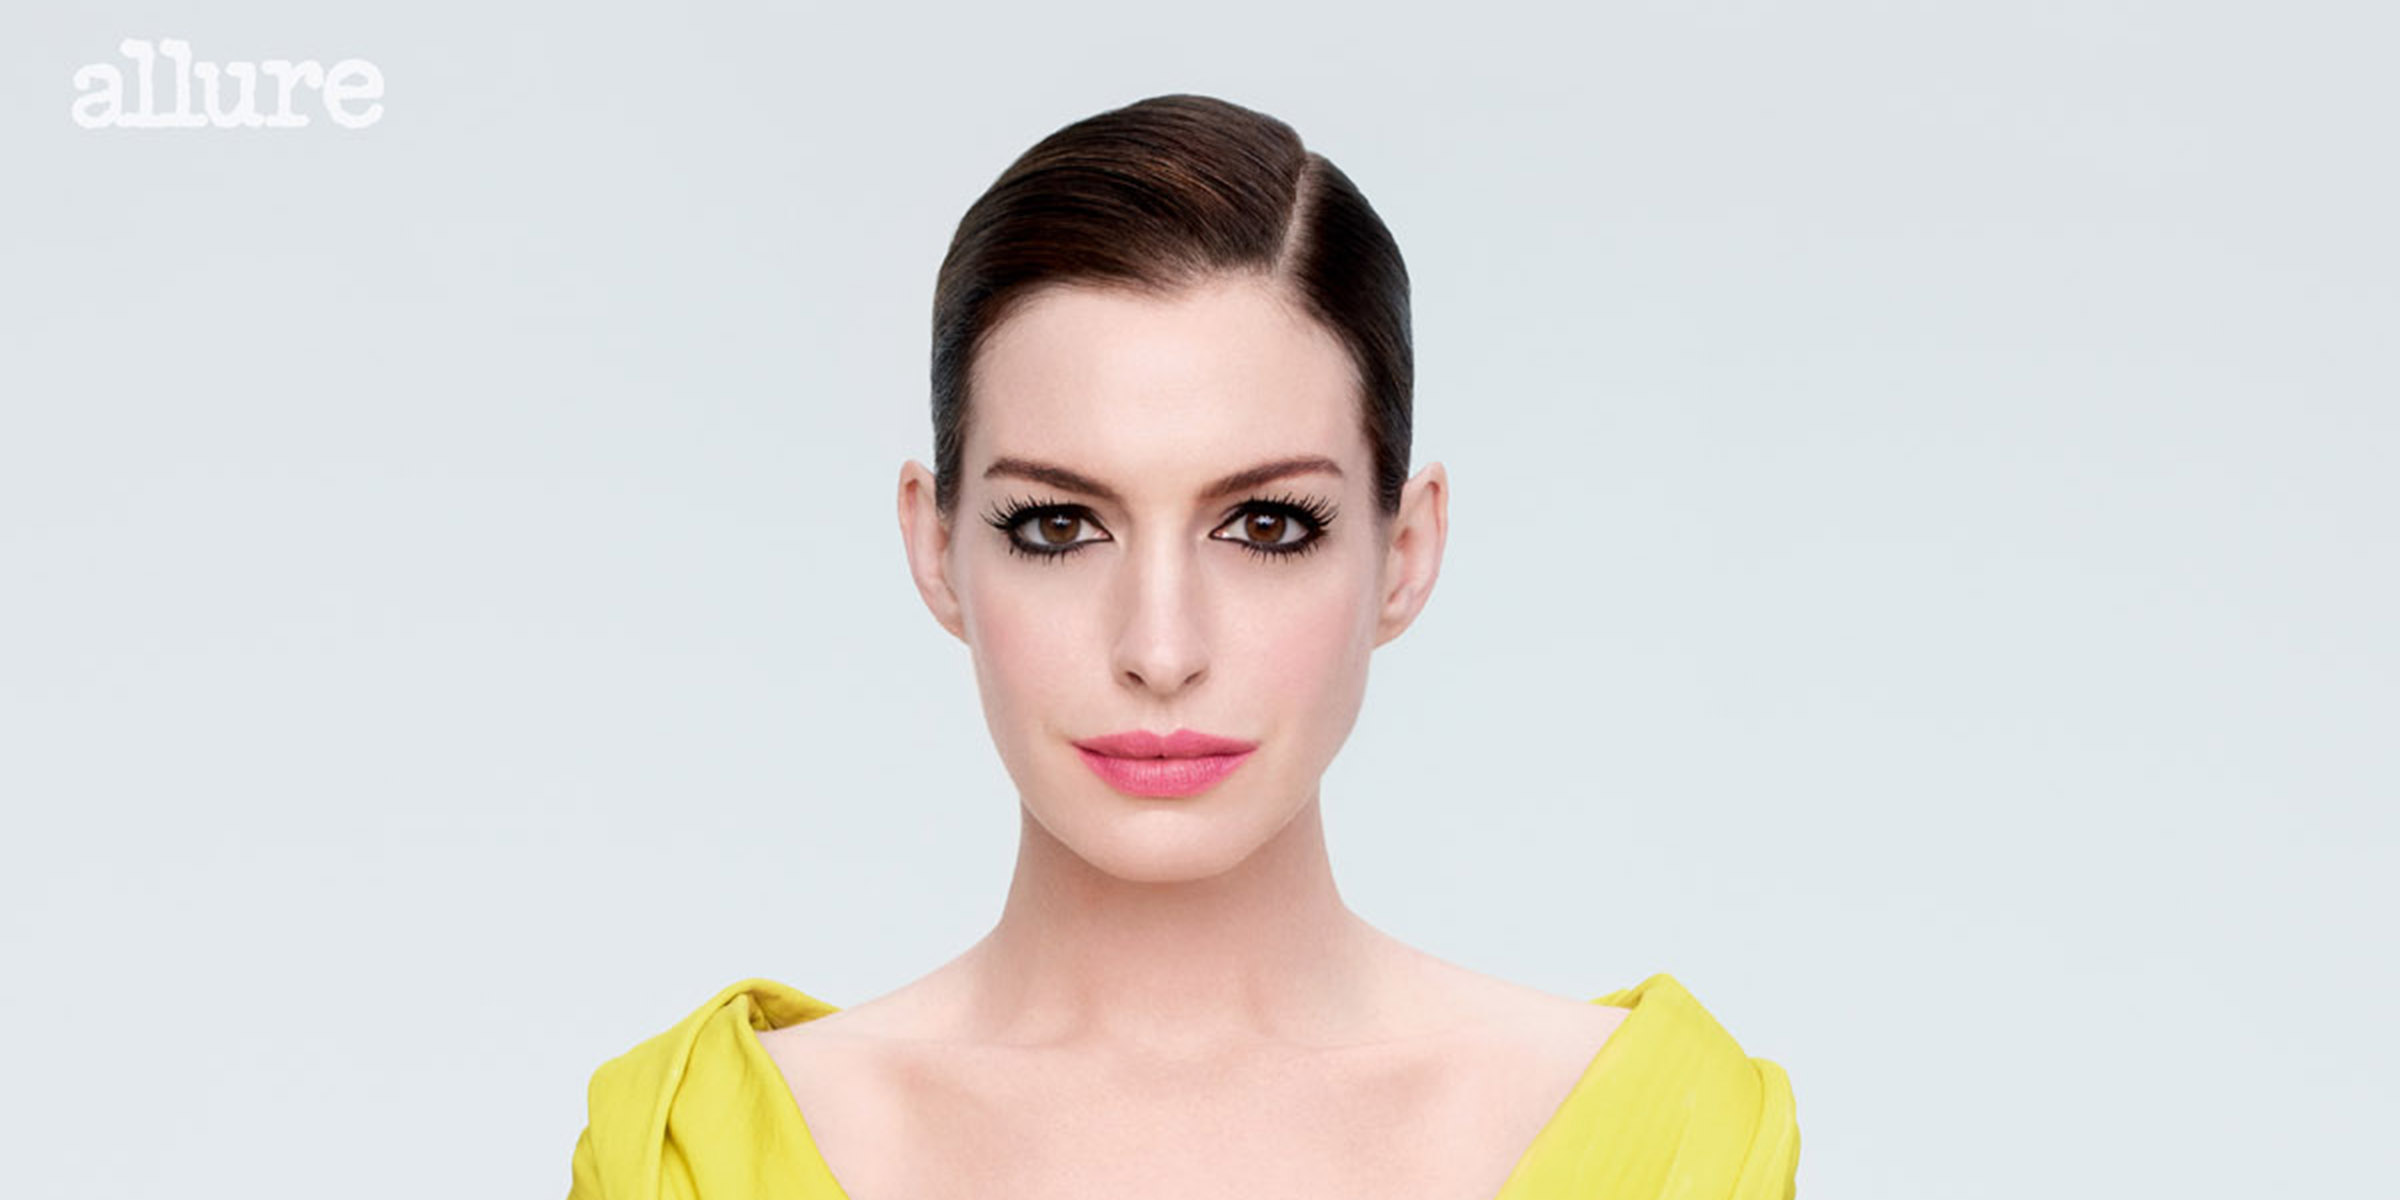 Anne Hathaway was asked to lose weight for a movie at age 16